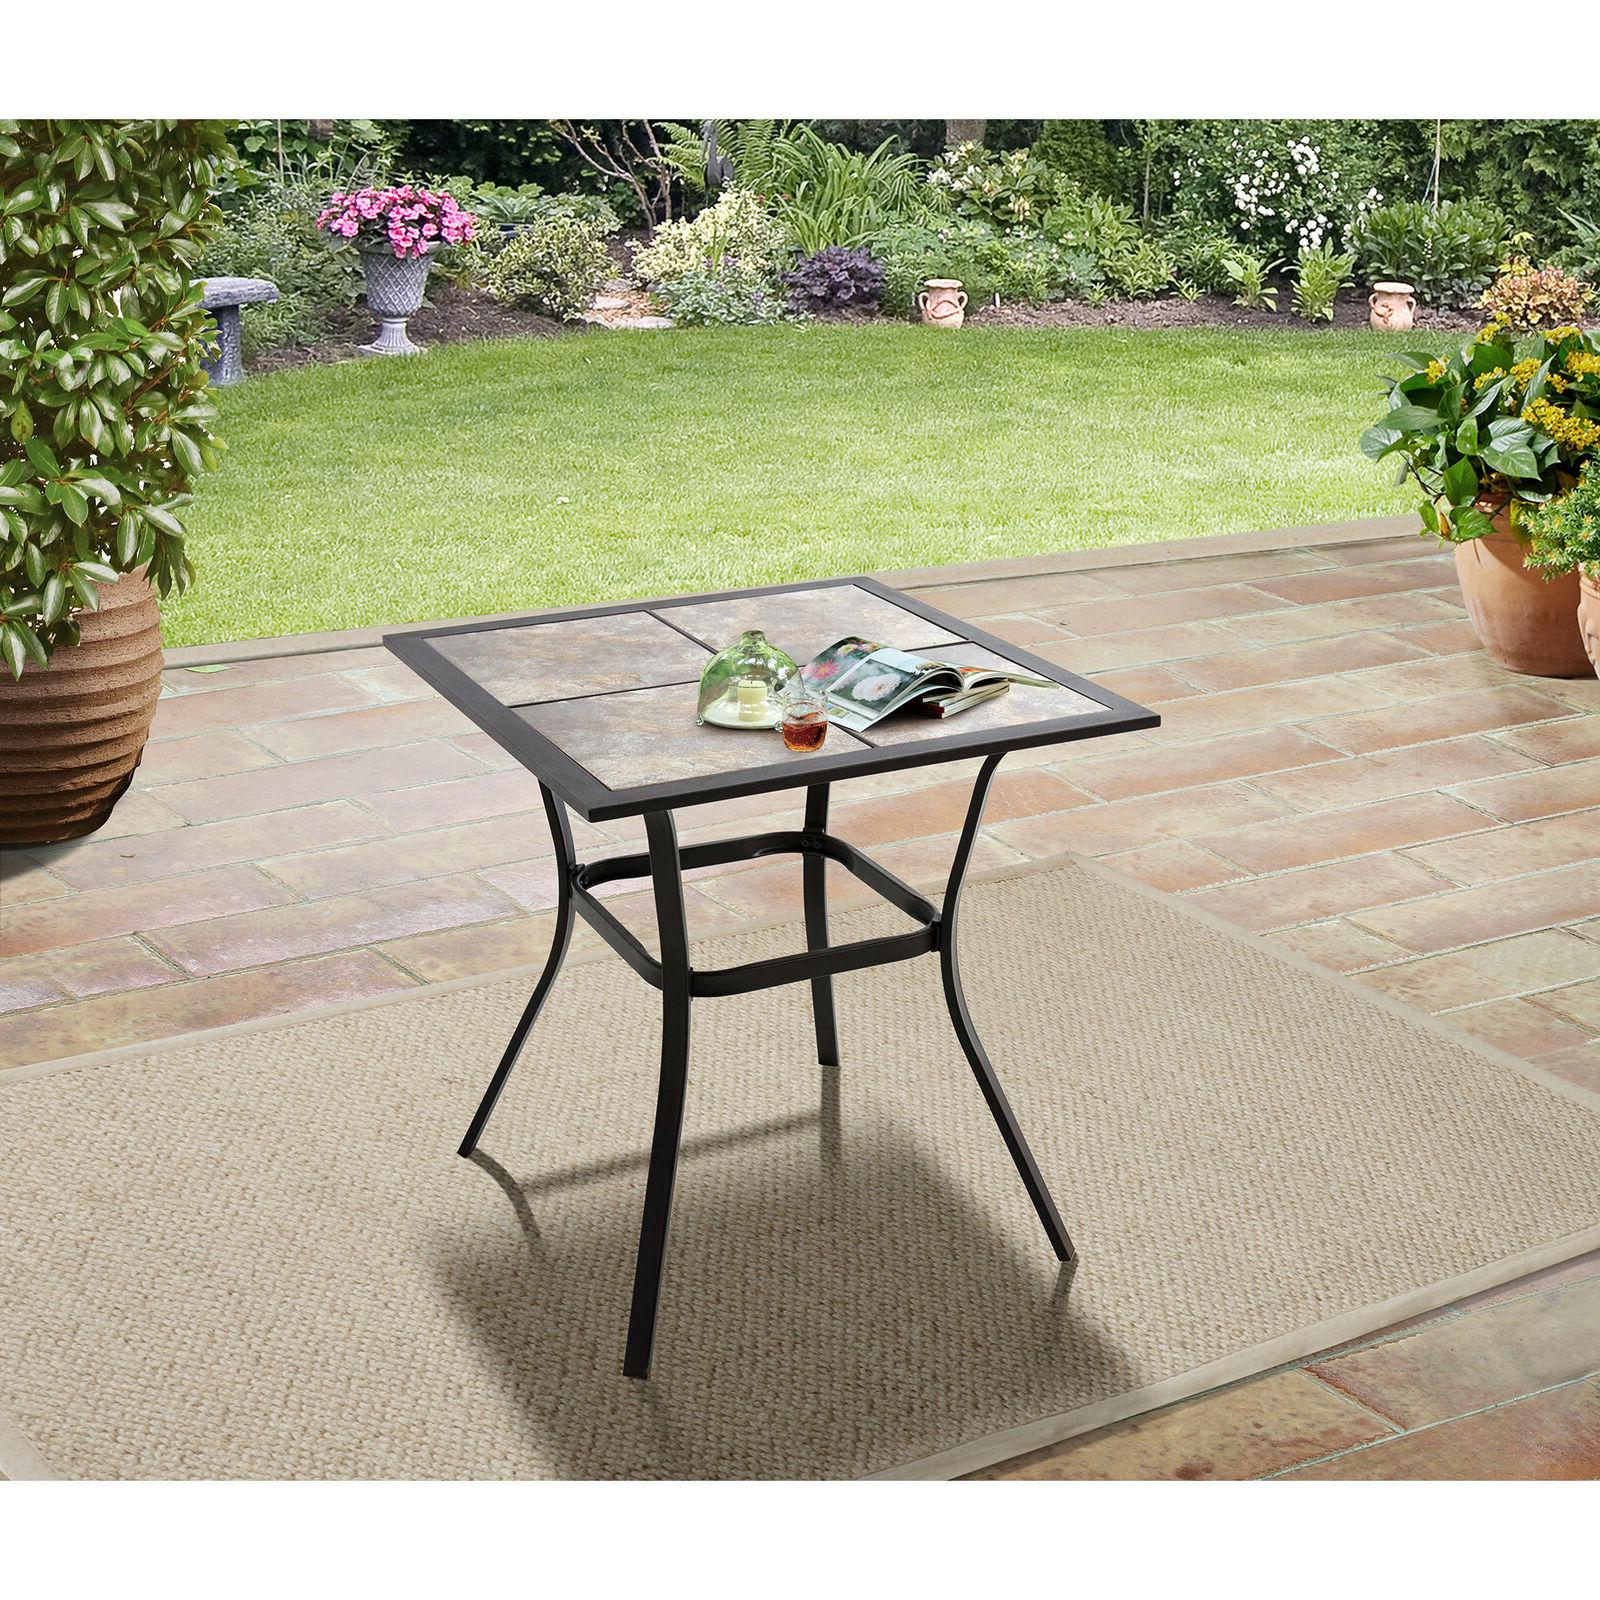 small outdoor patio dining table backyard furniture